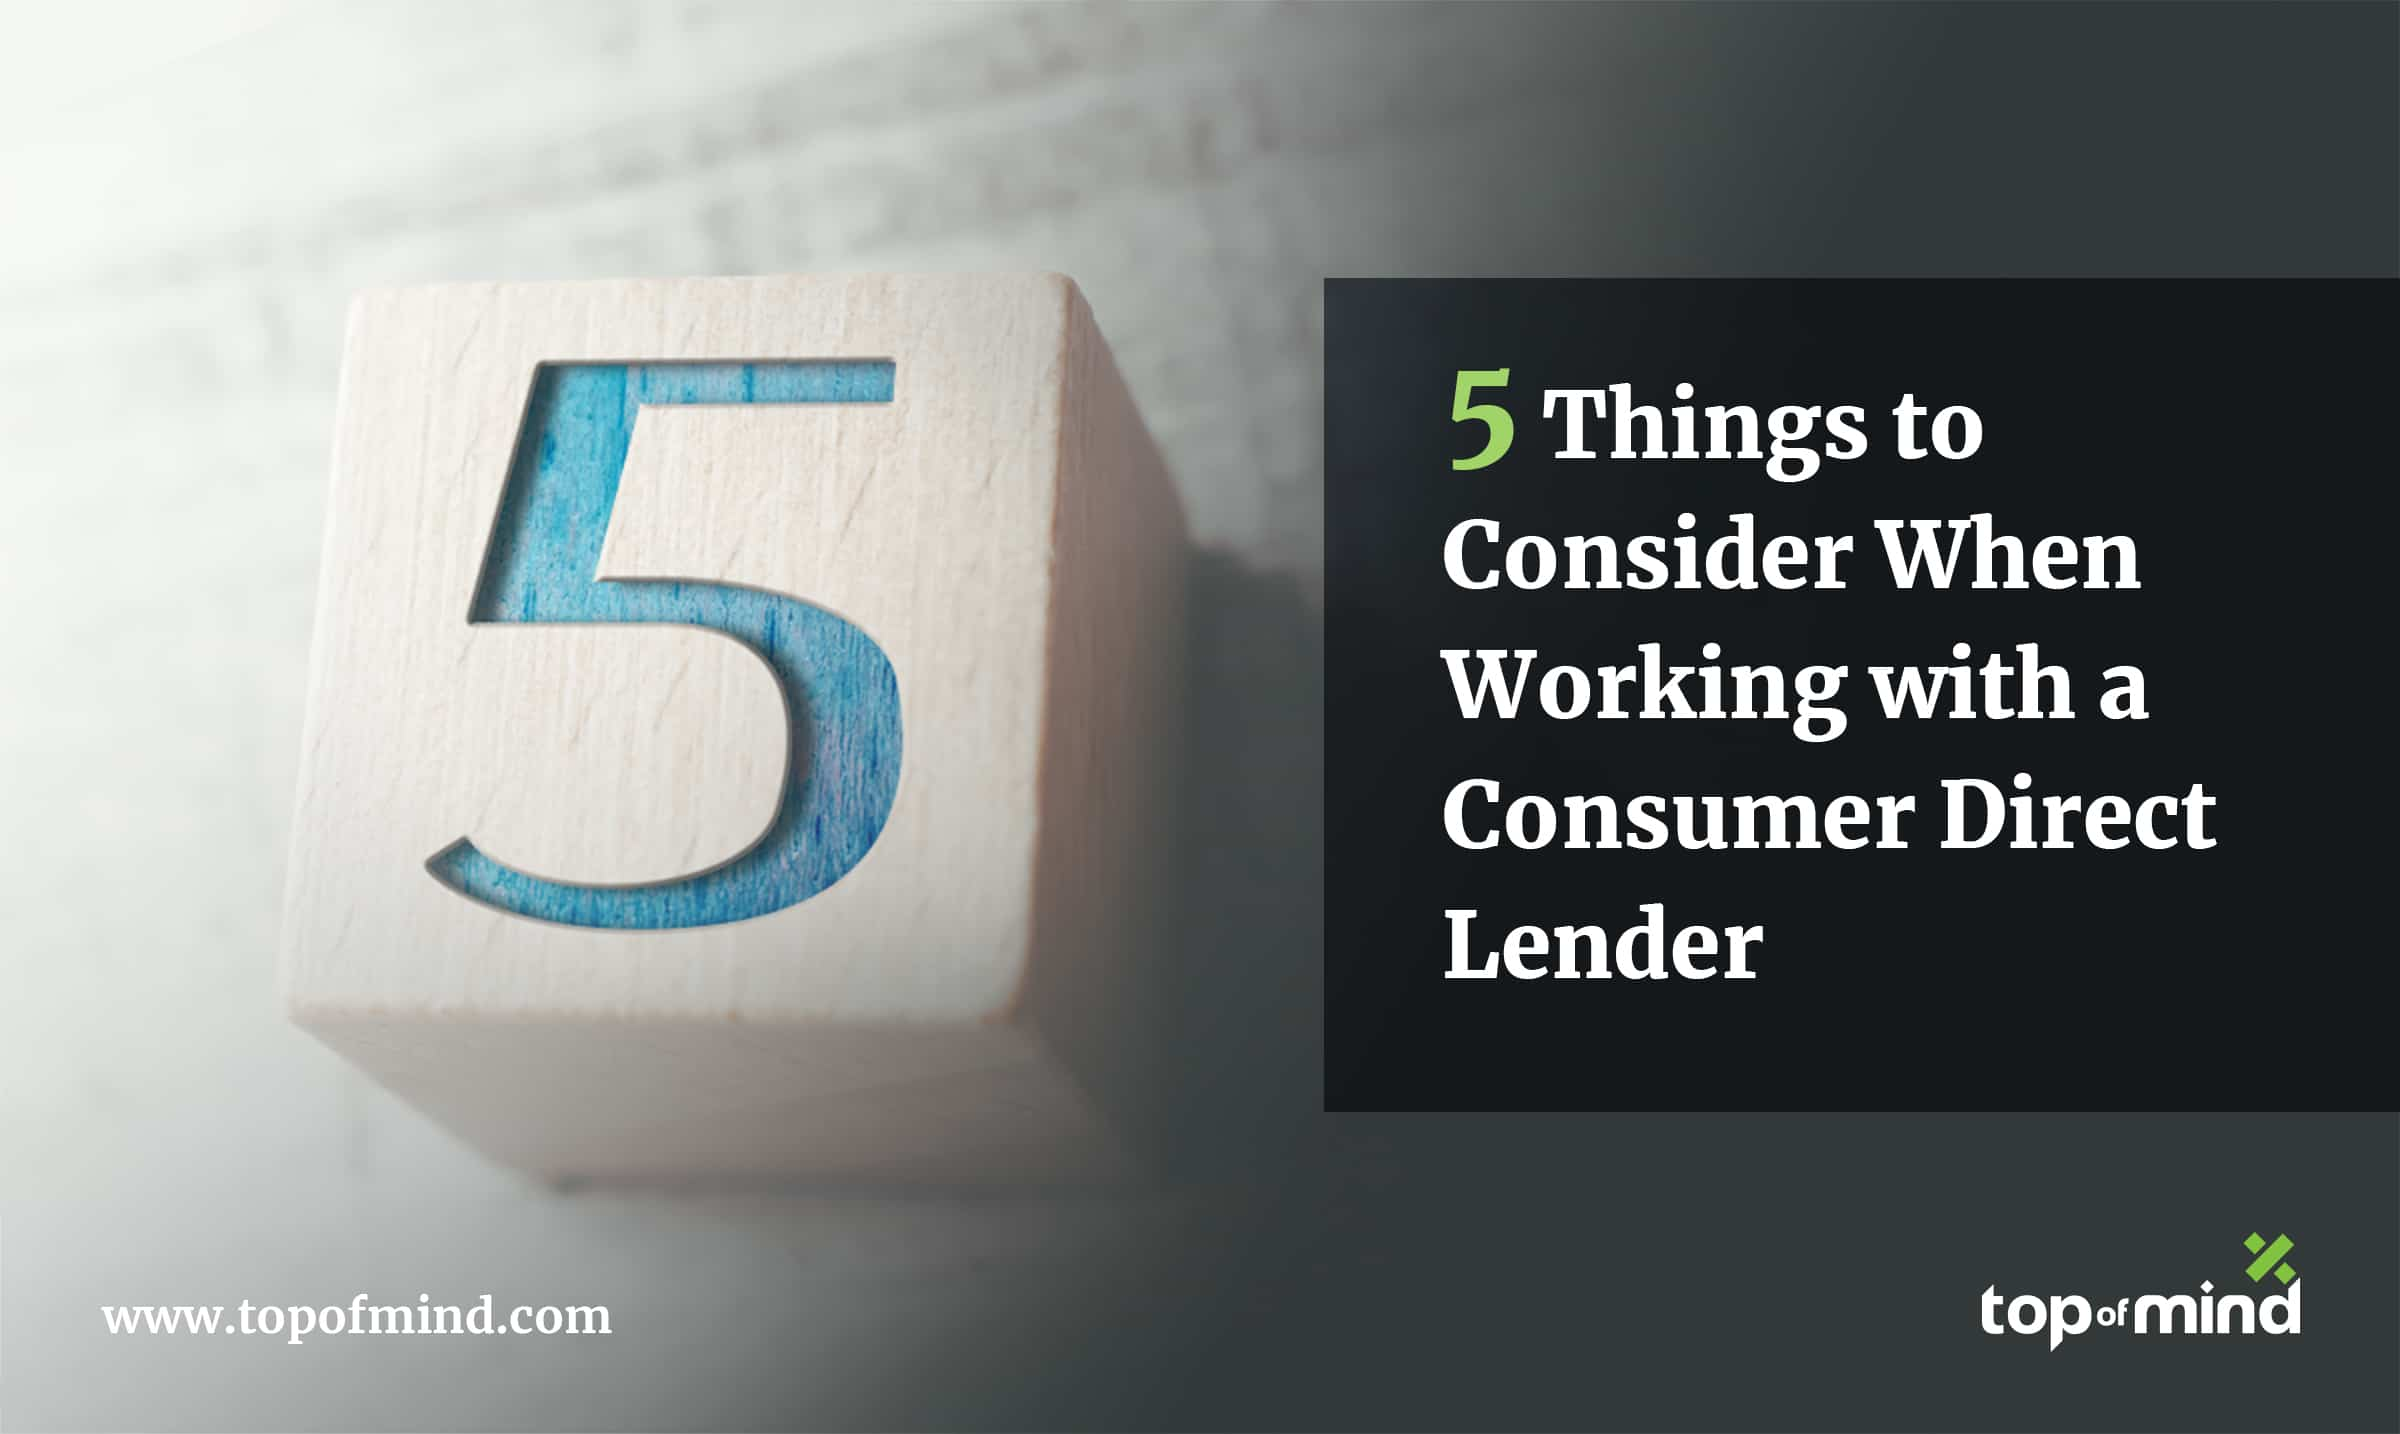 5-things-to-consider-when-working-with-a-consumer-direct-lender